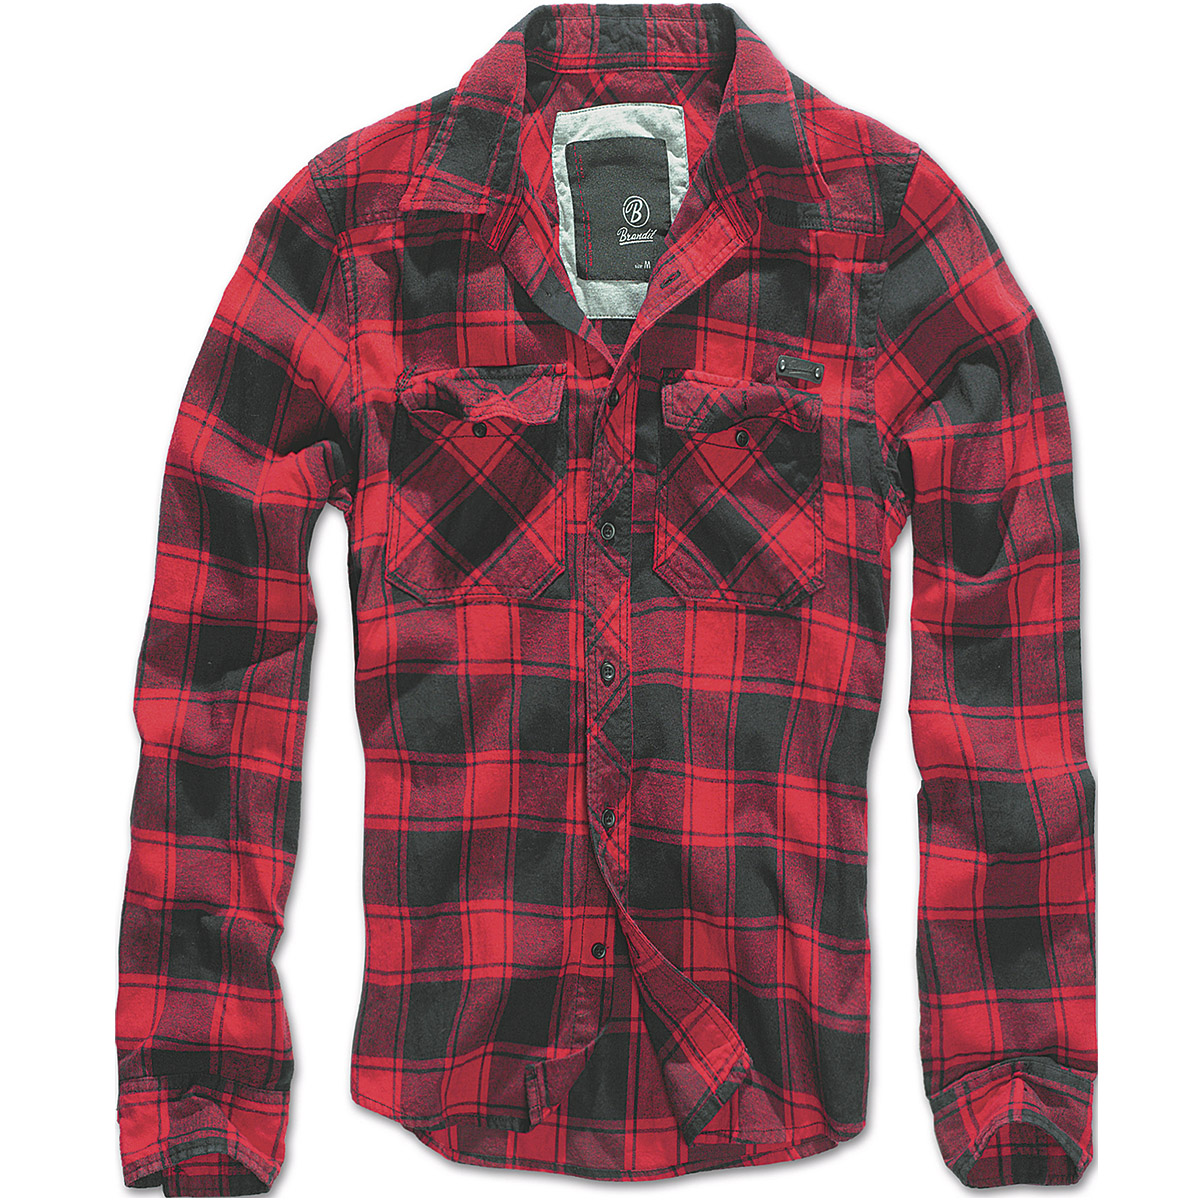 Free shipping BOTH ways on red plaid shirt, from our vast selection of styles. Fast delivery, and 24/7/ real-person service with a smile. Click or call